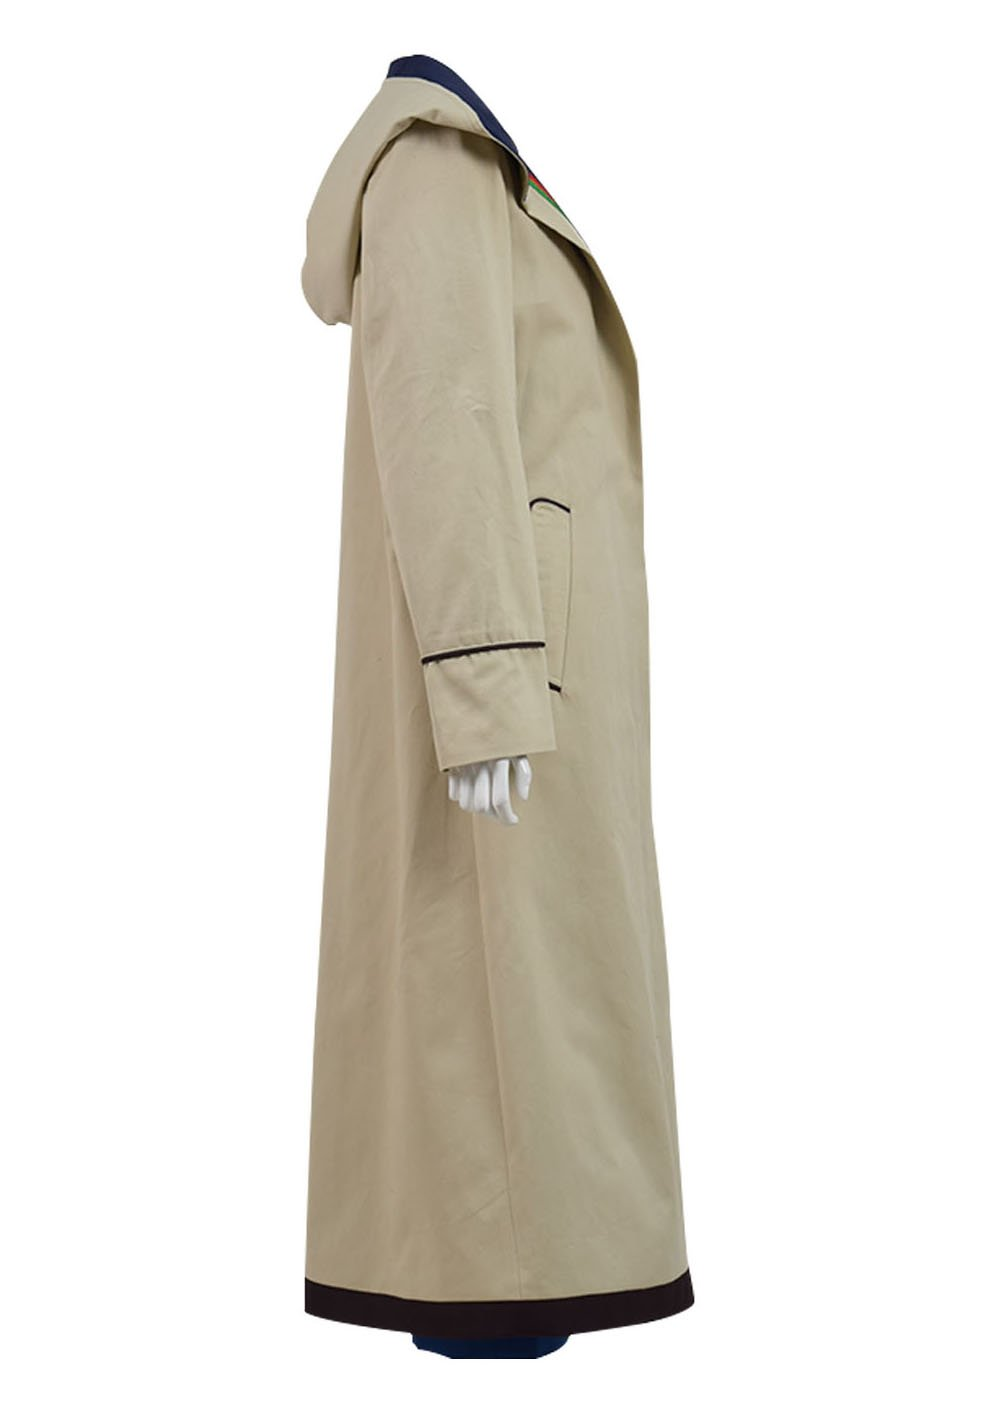 Very Last Shop Classic Sci-Fi TV Series 13th Doctor Costume Women Beige Trench Coat Overcoat (Beige Full Set, US Women-XXL) by Very Last Shop (Image #3)